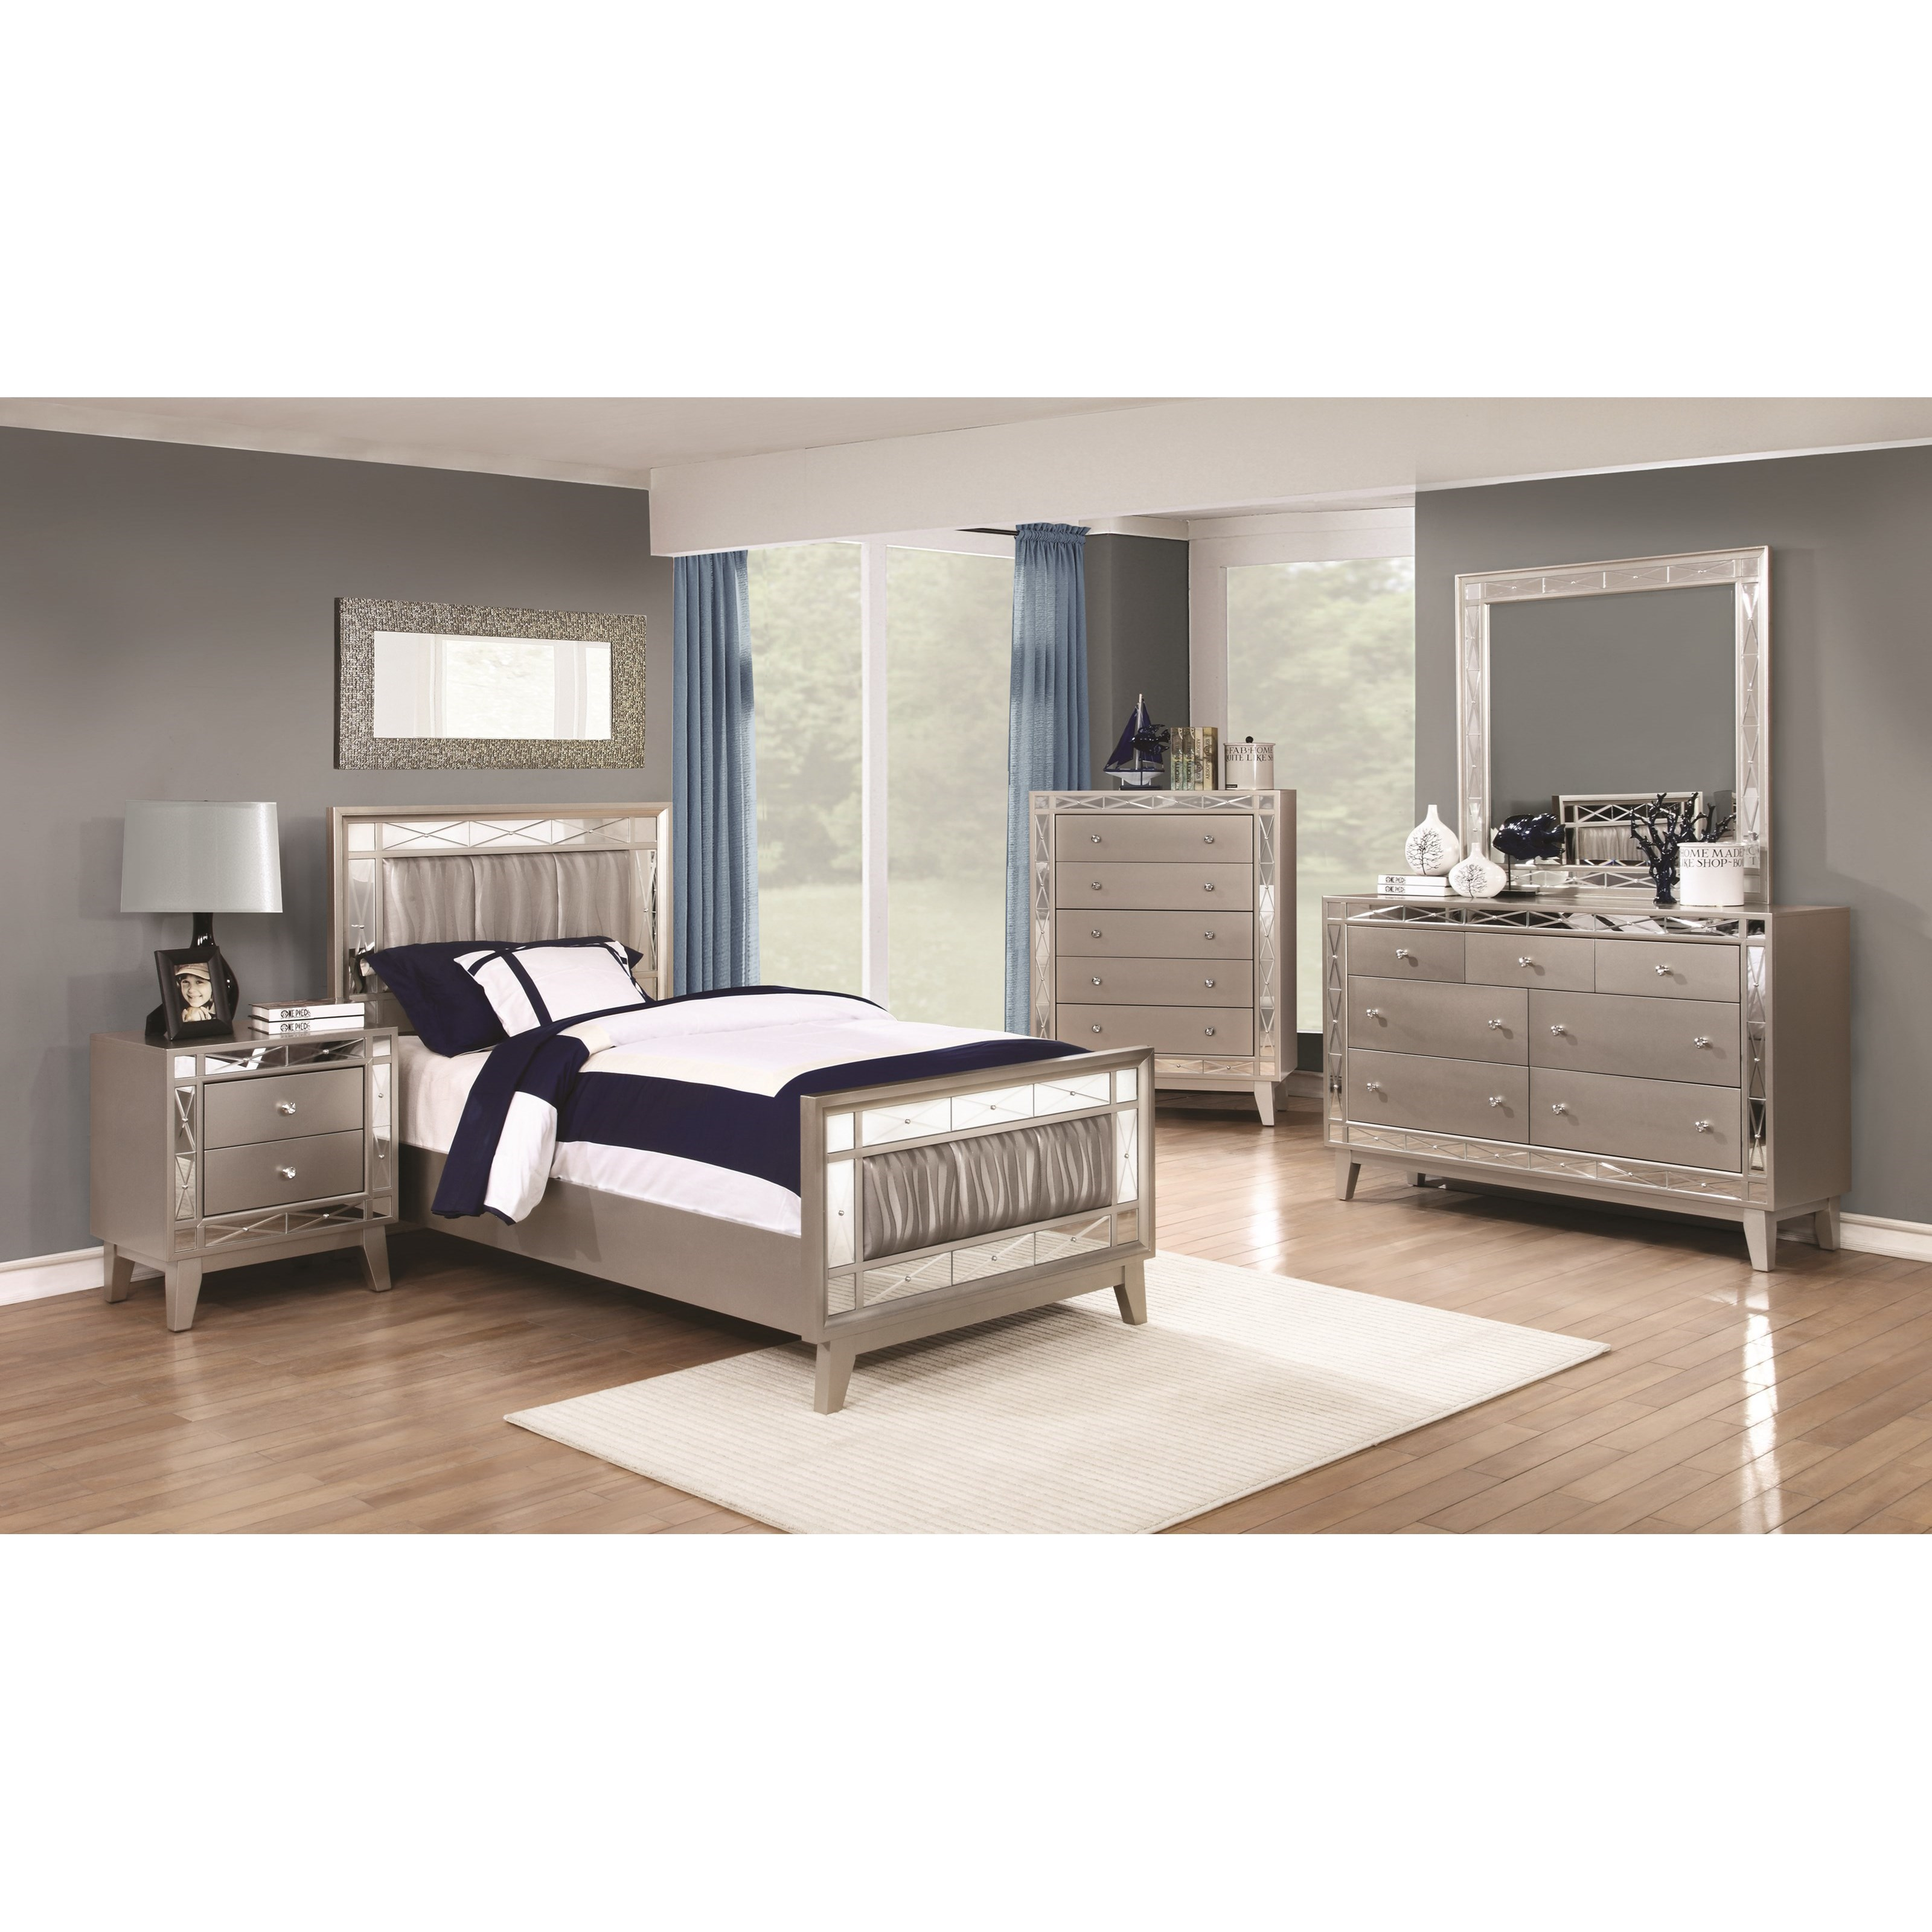 Leighton Full Bedroom Group by Coaster at Northeast Factory Direct